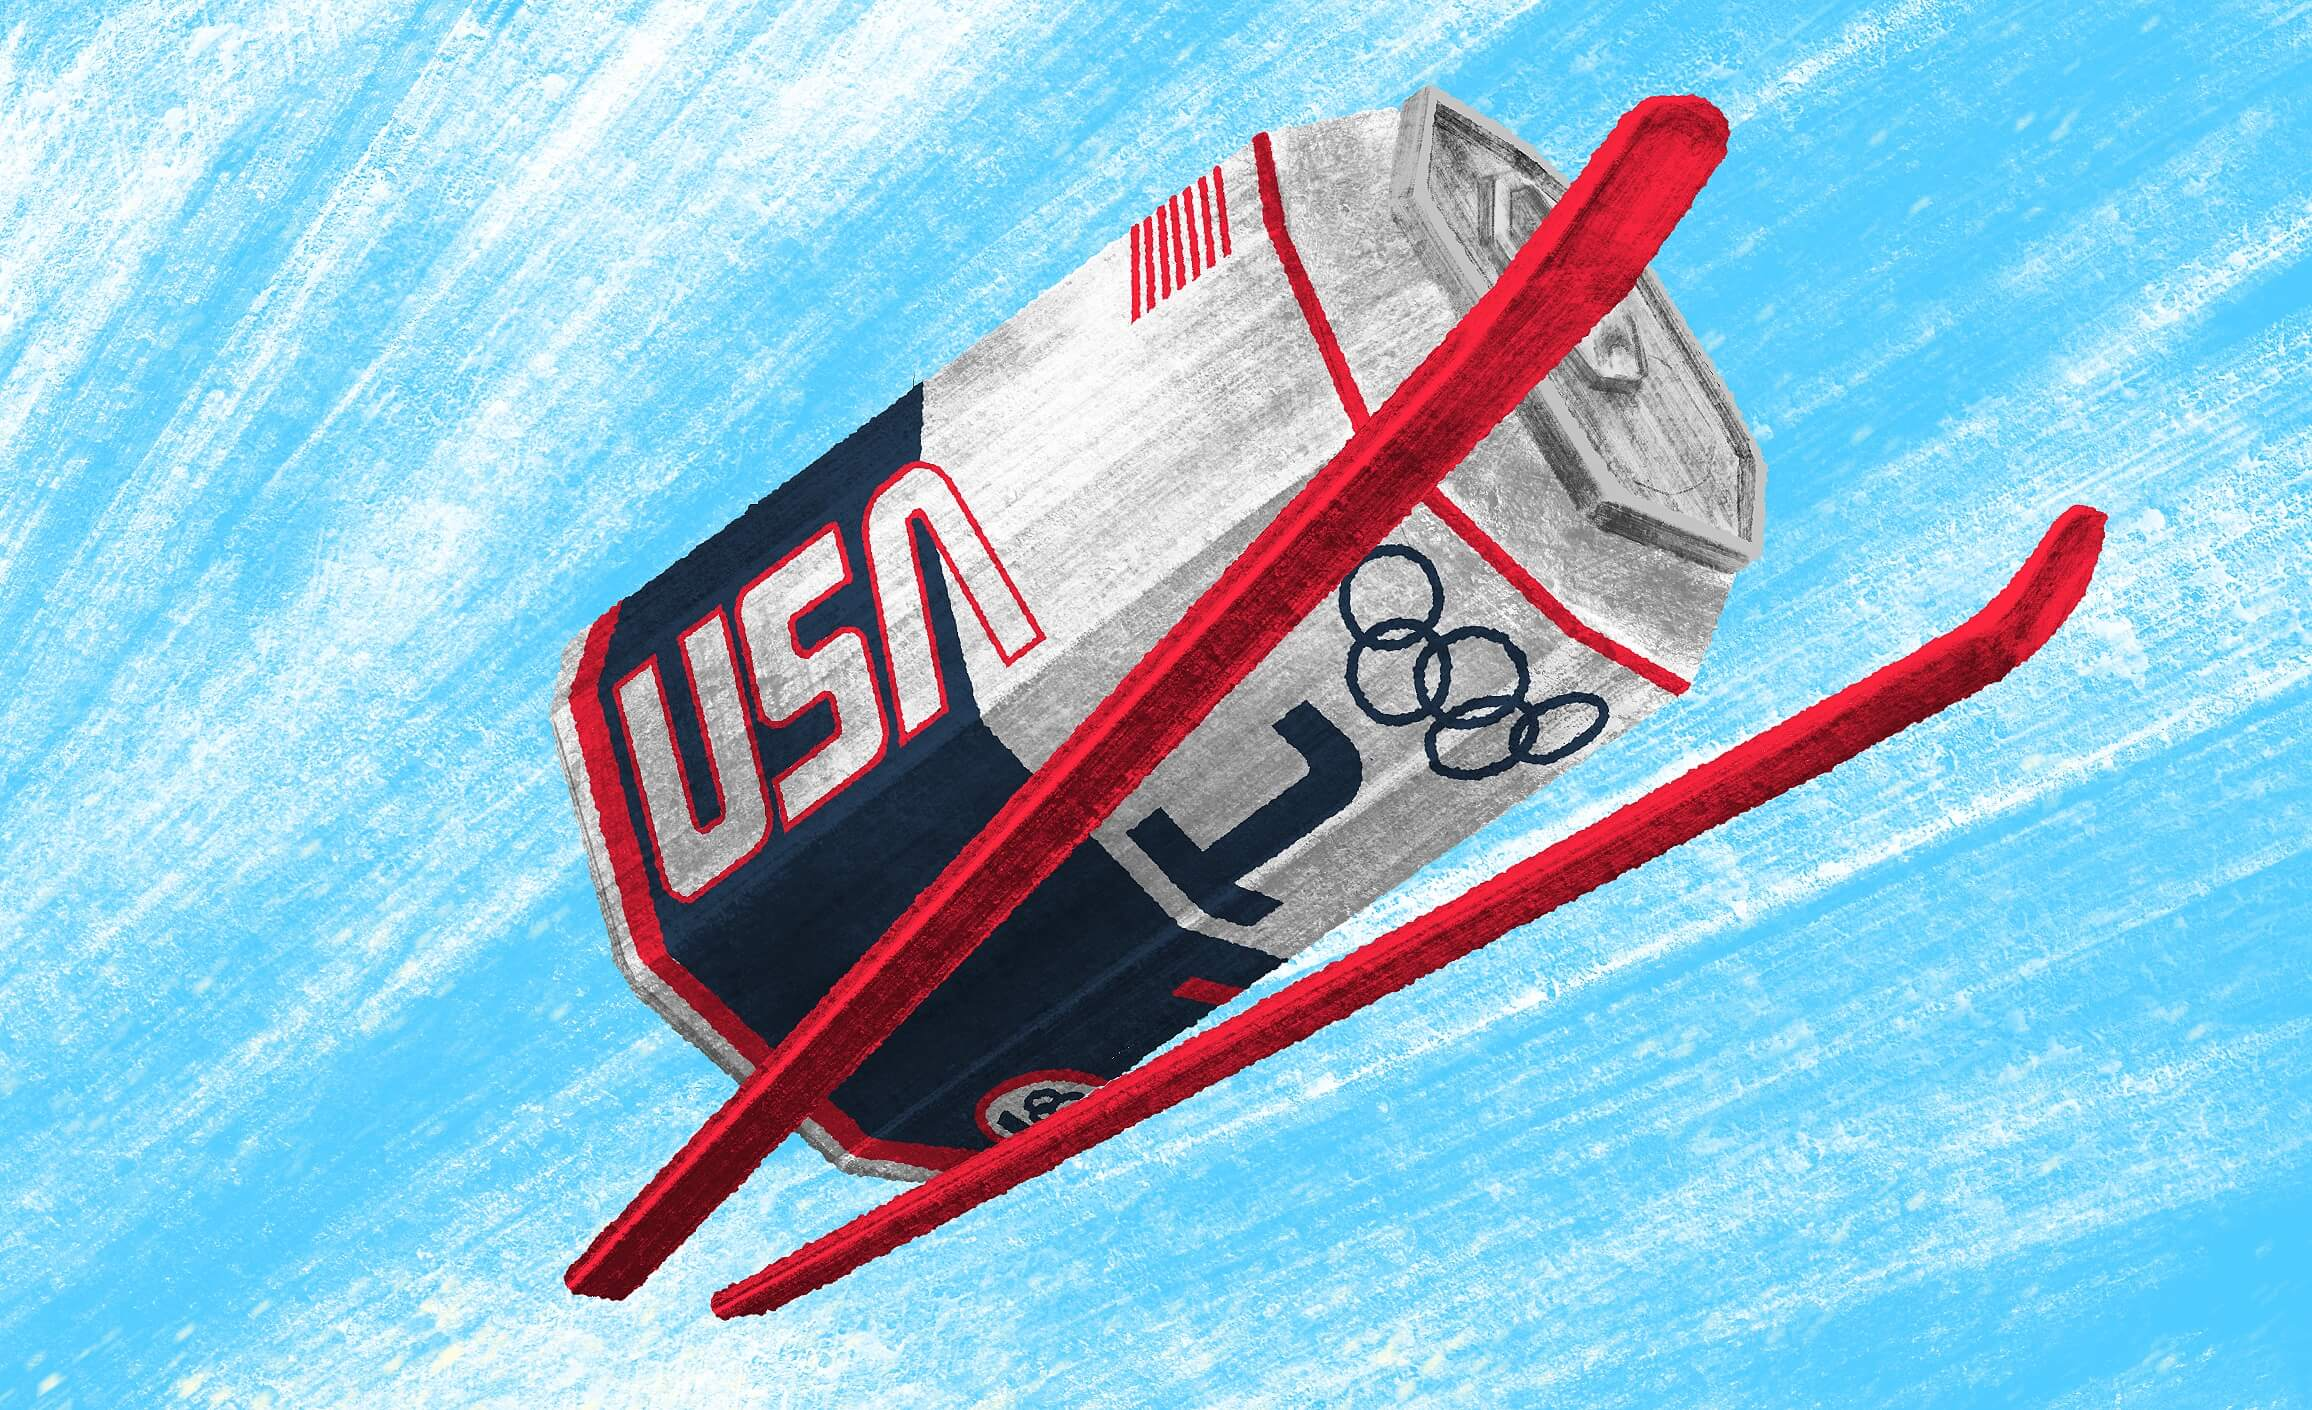 A Beer Drinker's Guide to the Winter Olympics